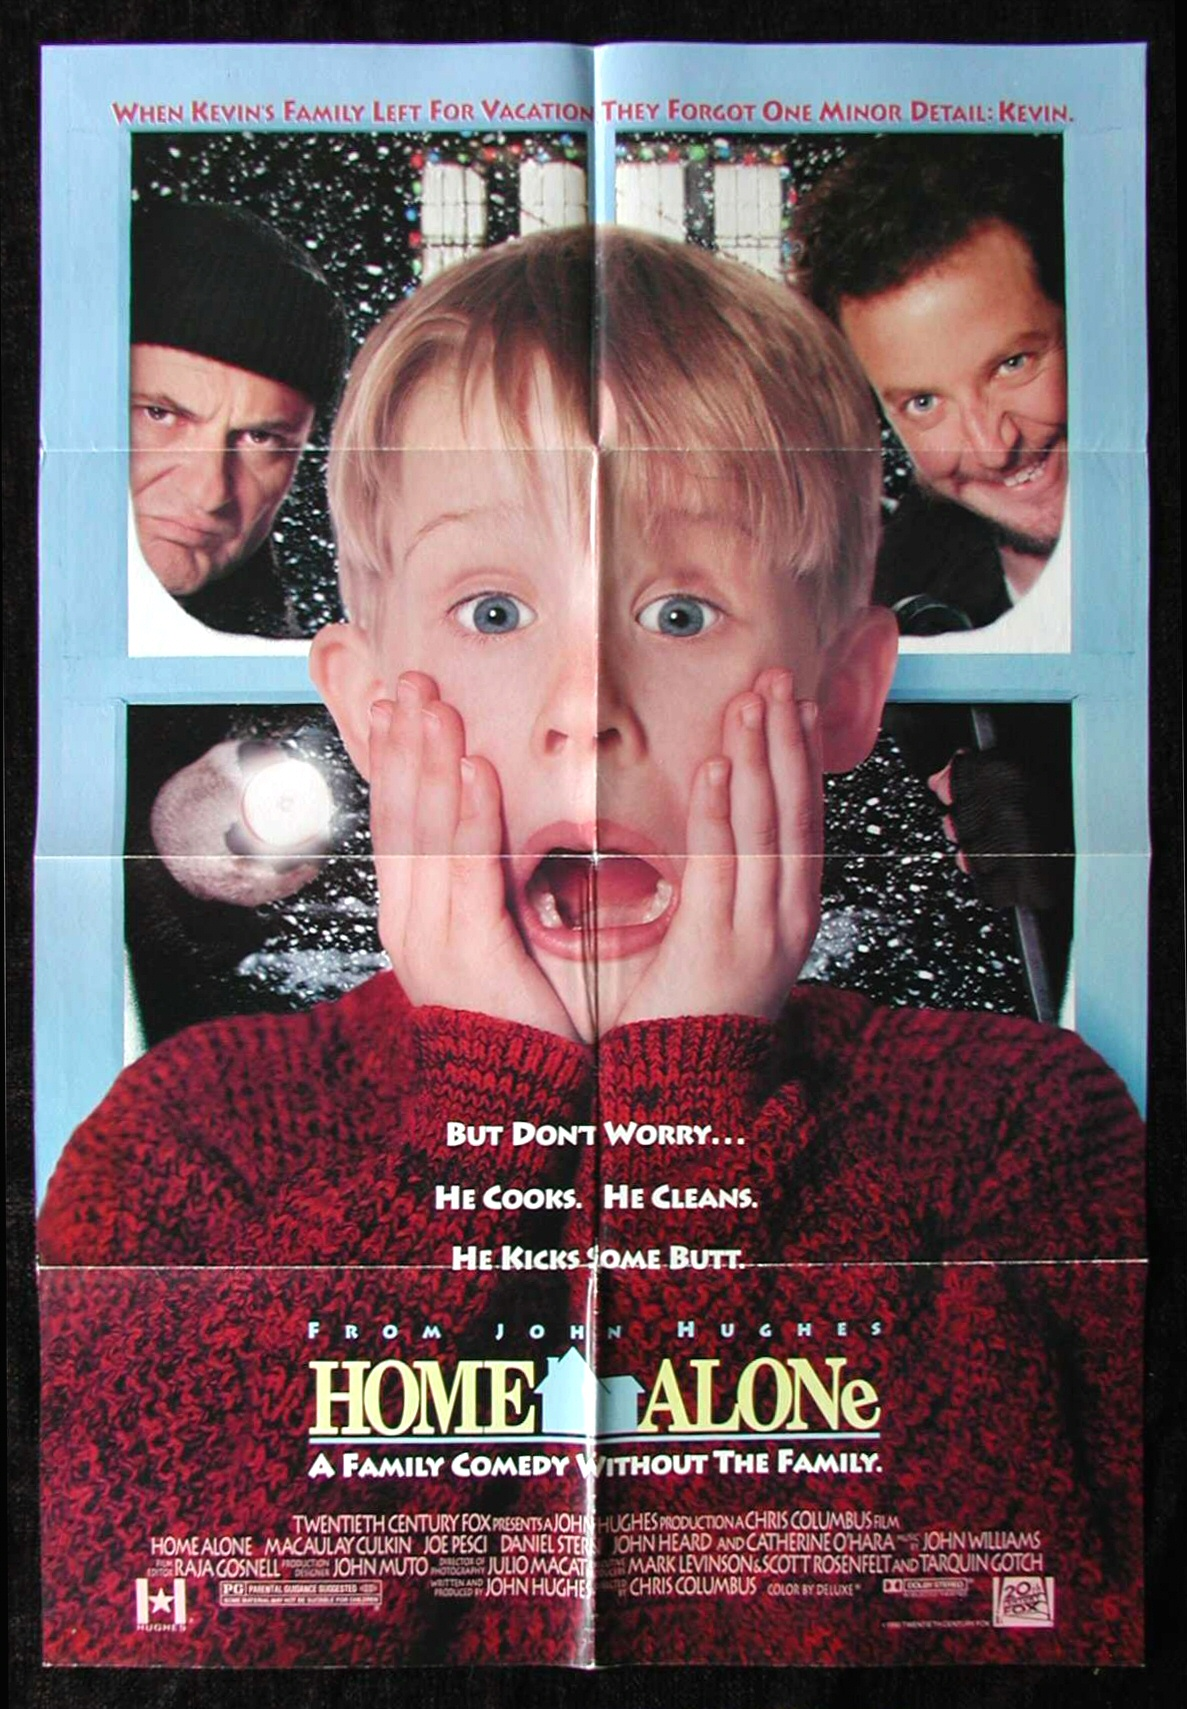 Home alone pictures movie.